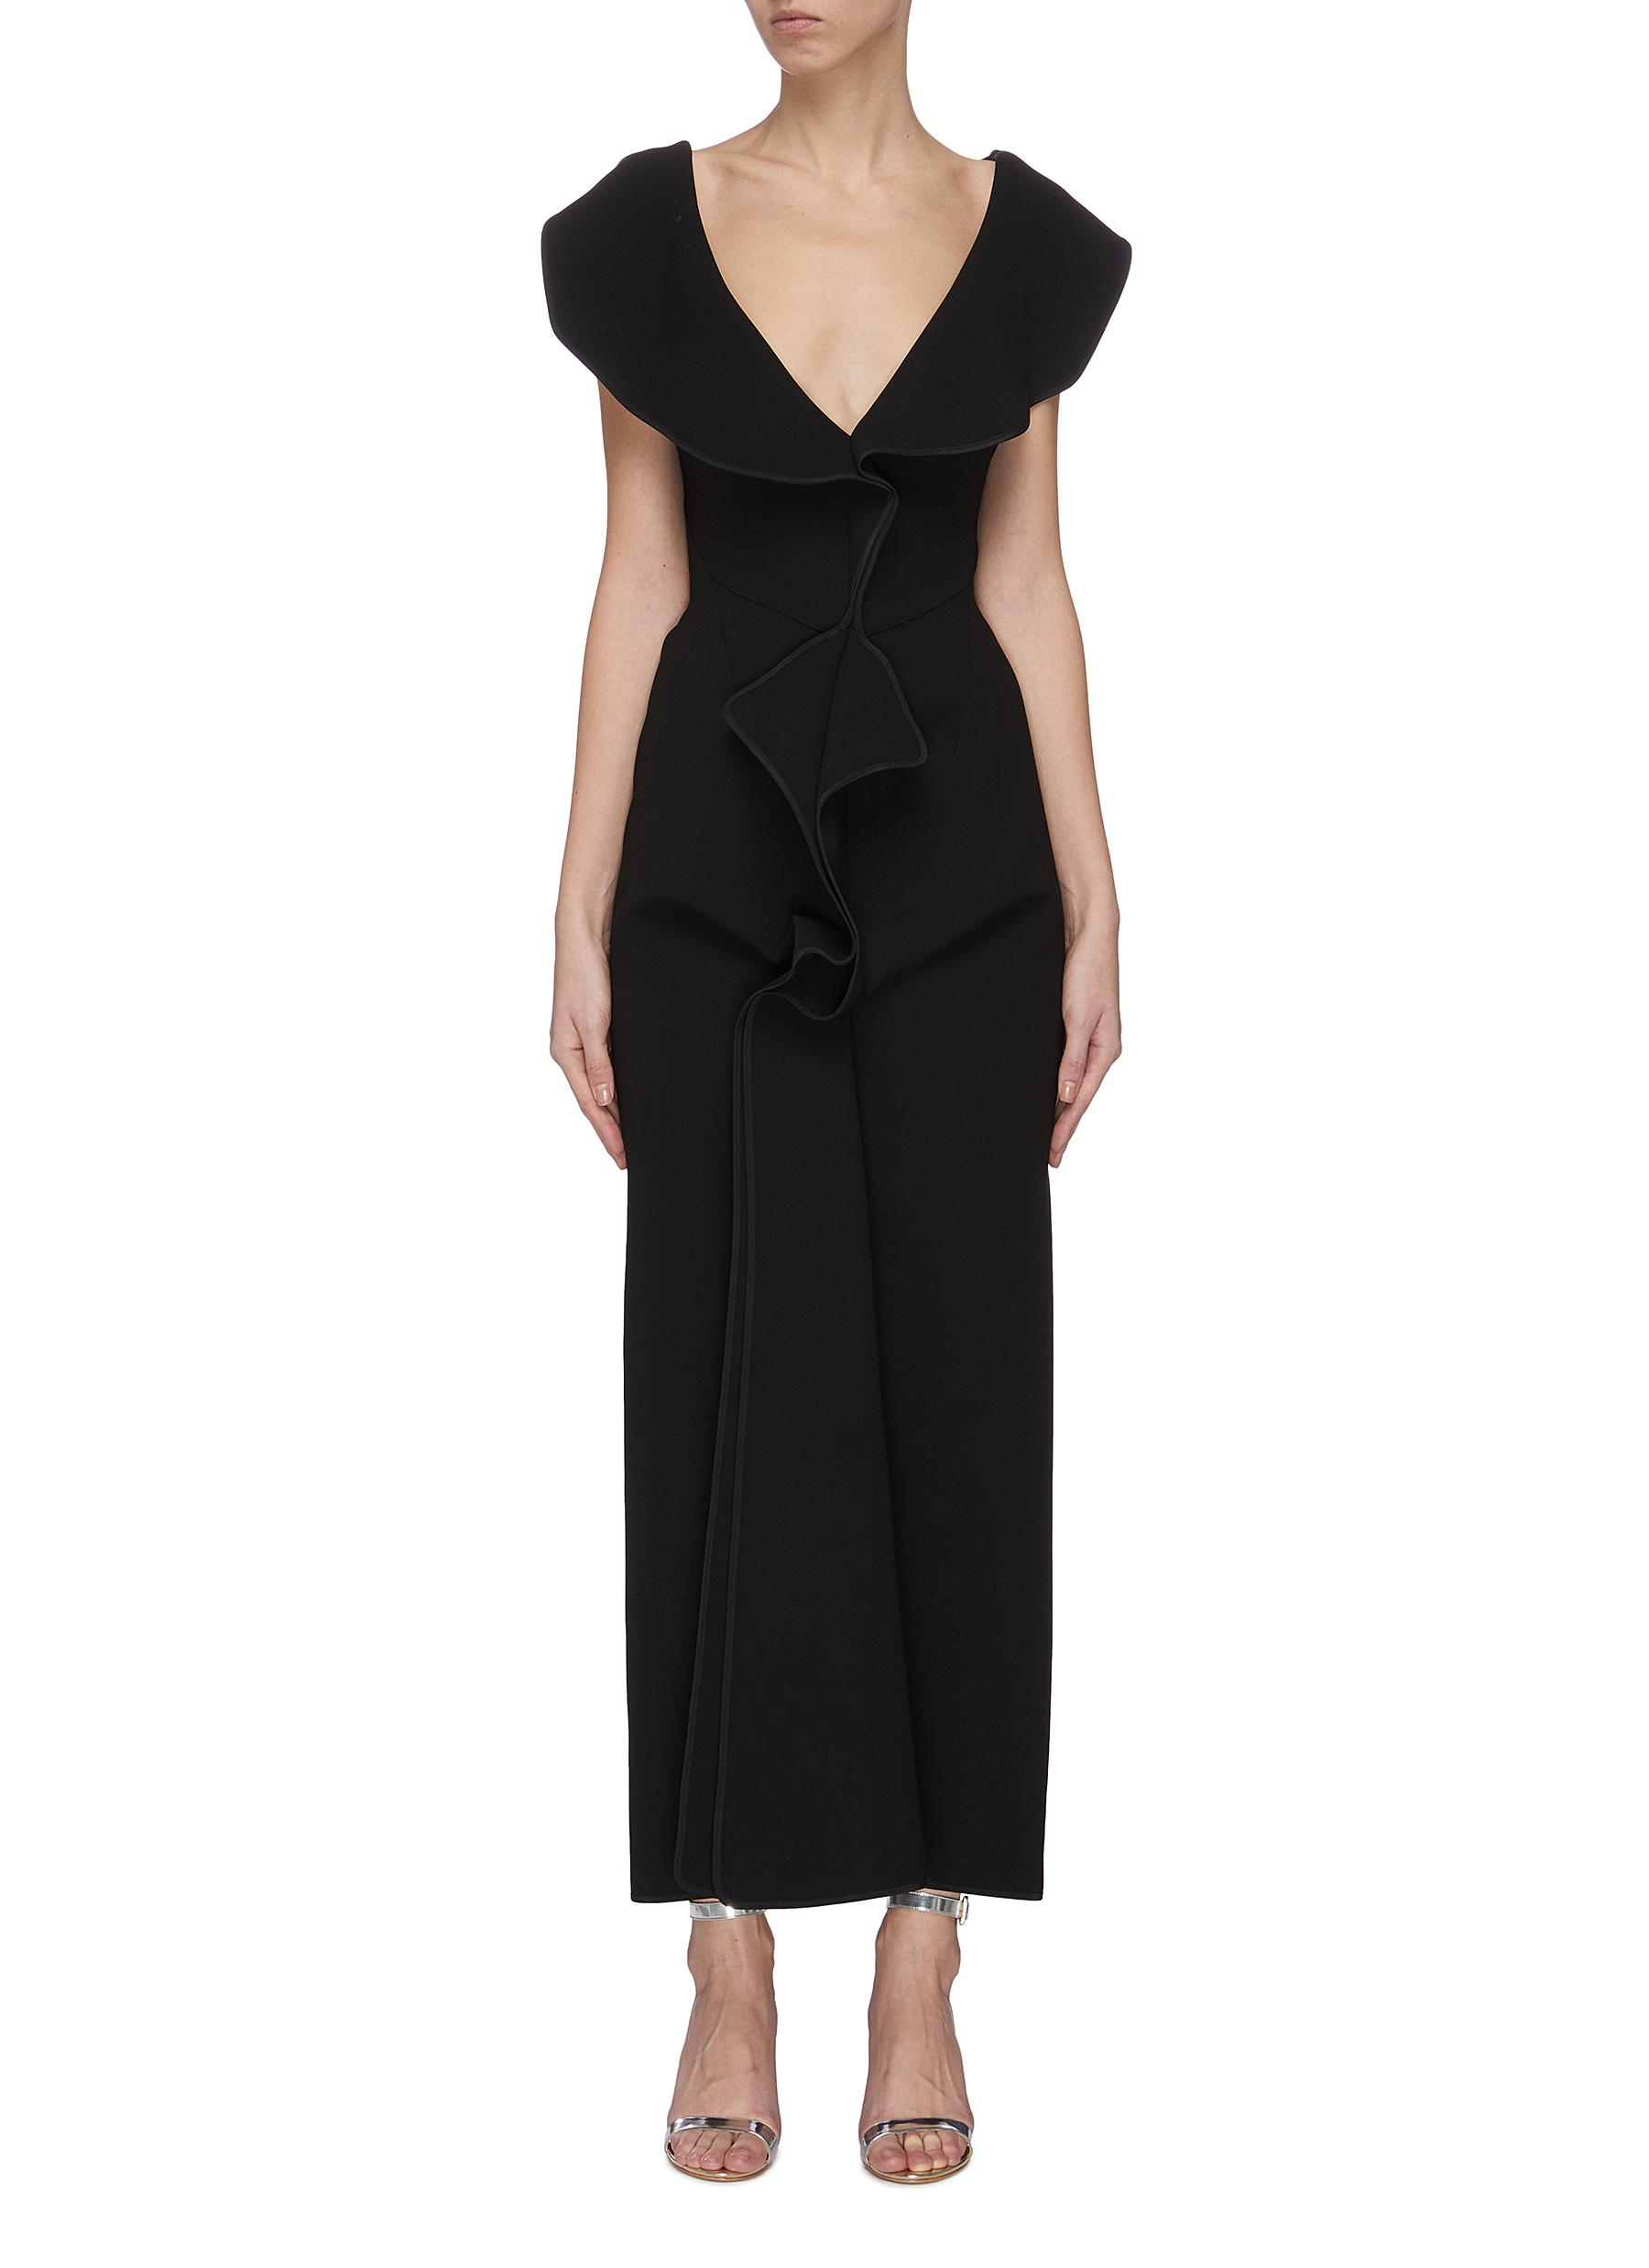 Buy Maticevski Dresses 'Insecta' ruffle V-neck midi dress